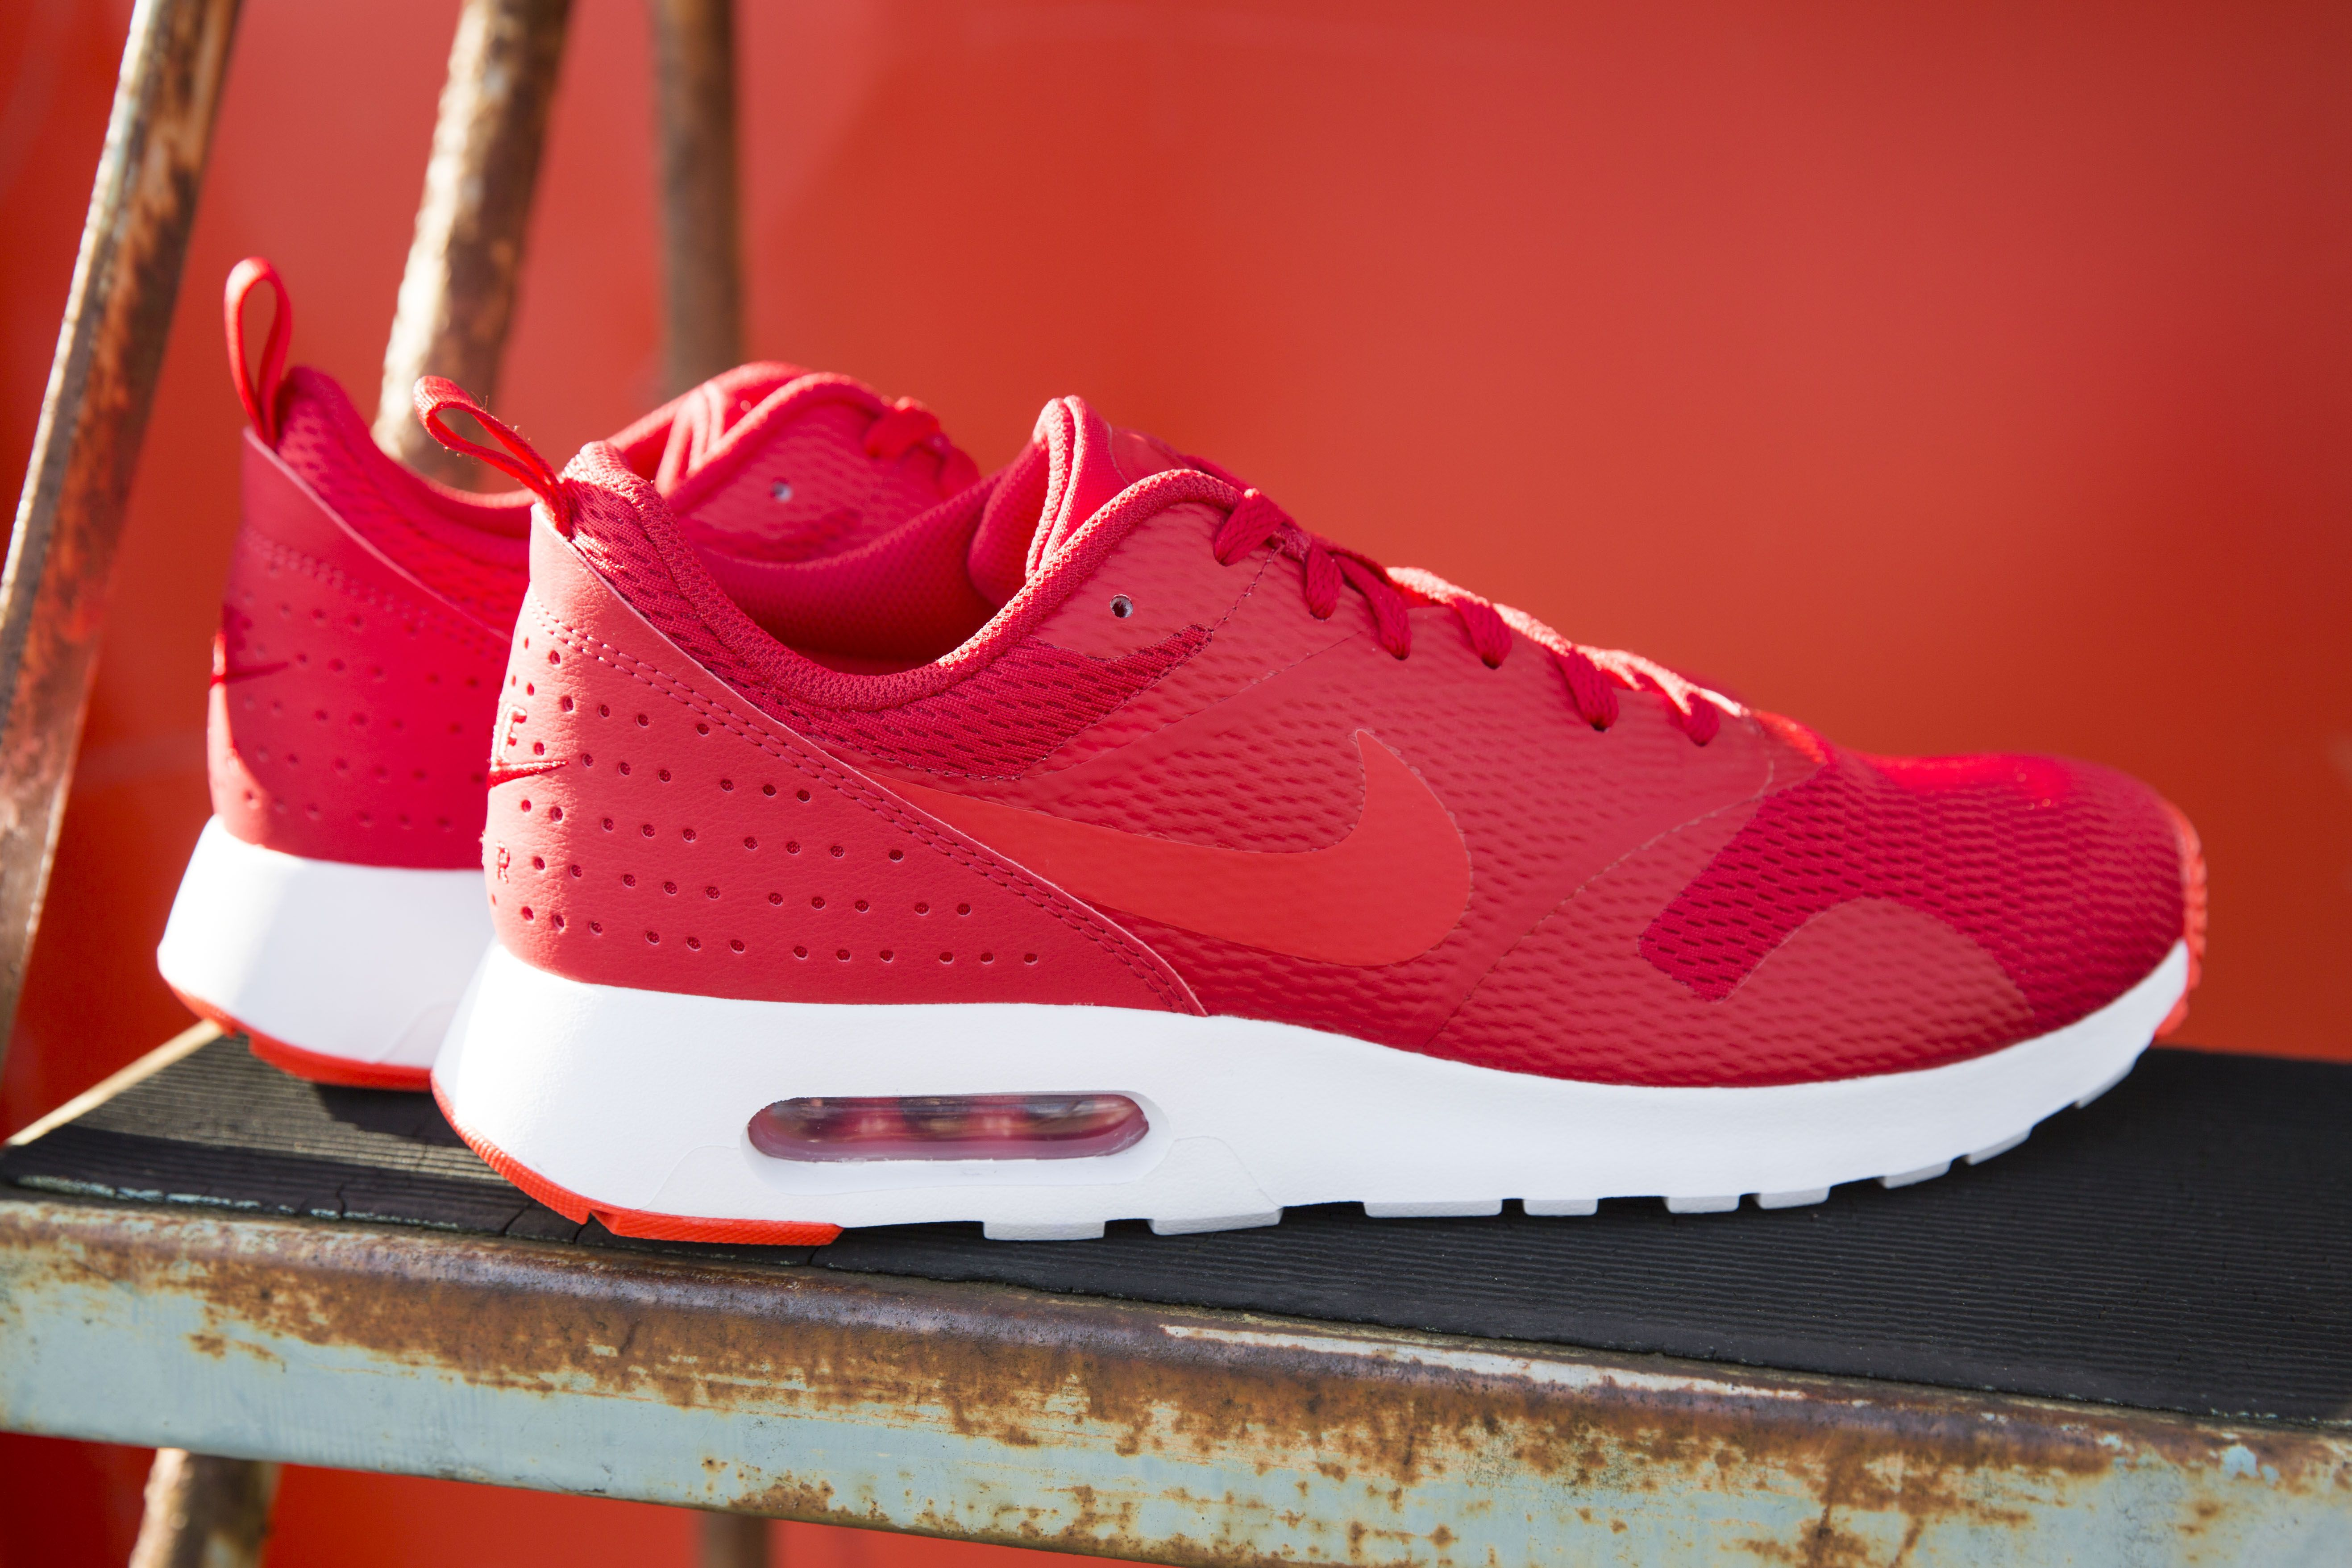 new style 09920 159d9 These mens red hot Nike Air Max Tavas trainers won t be around long.    sneaks   Air max, Nike air, Nike air max